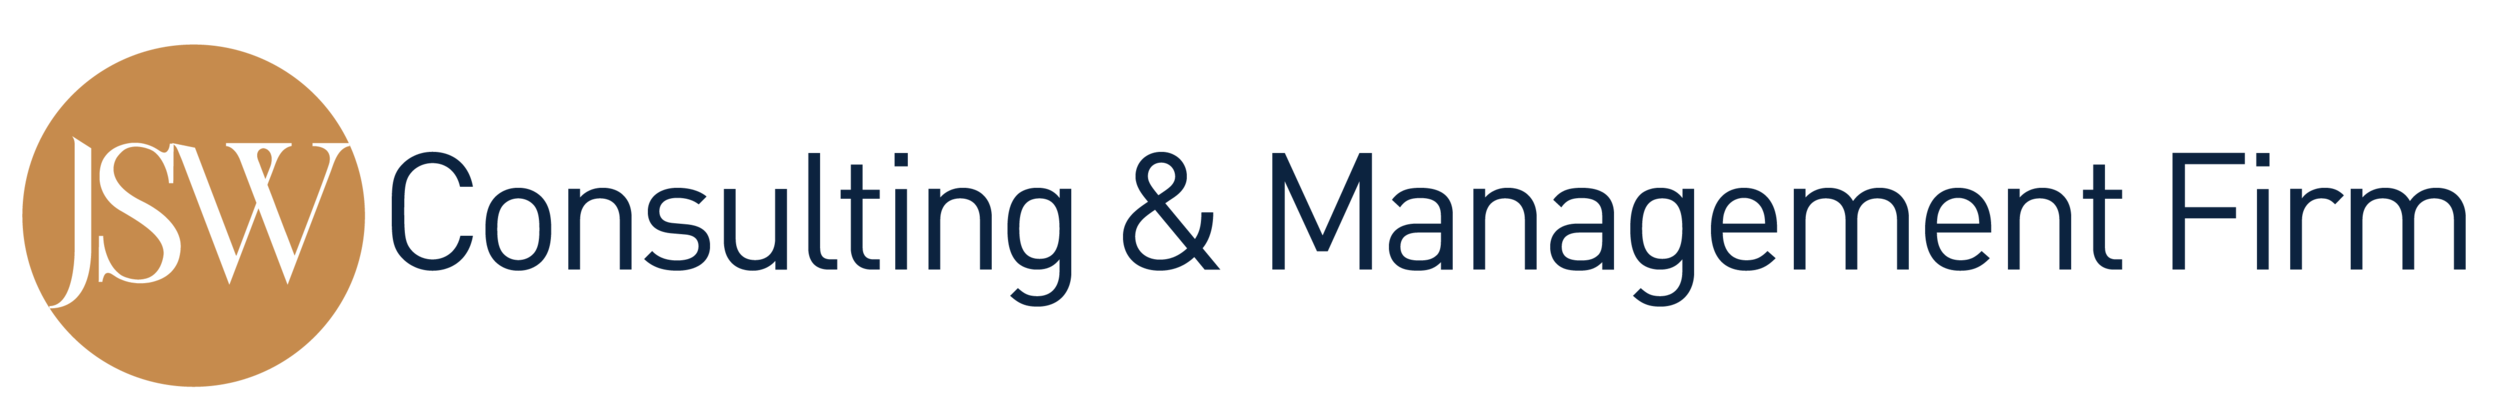 JSW MGMT Logo-10.png